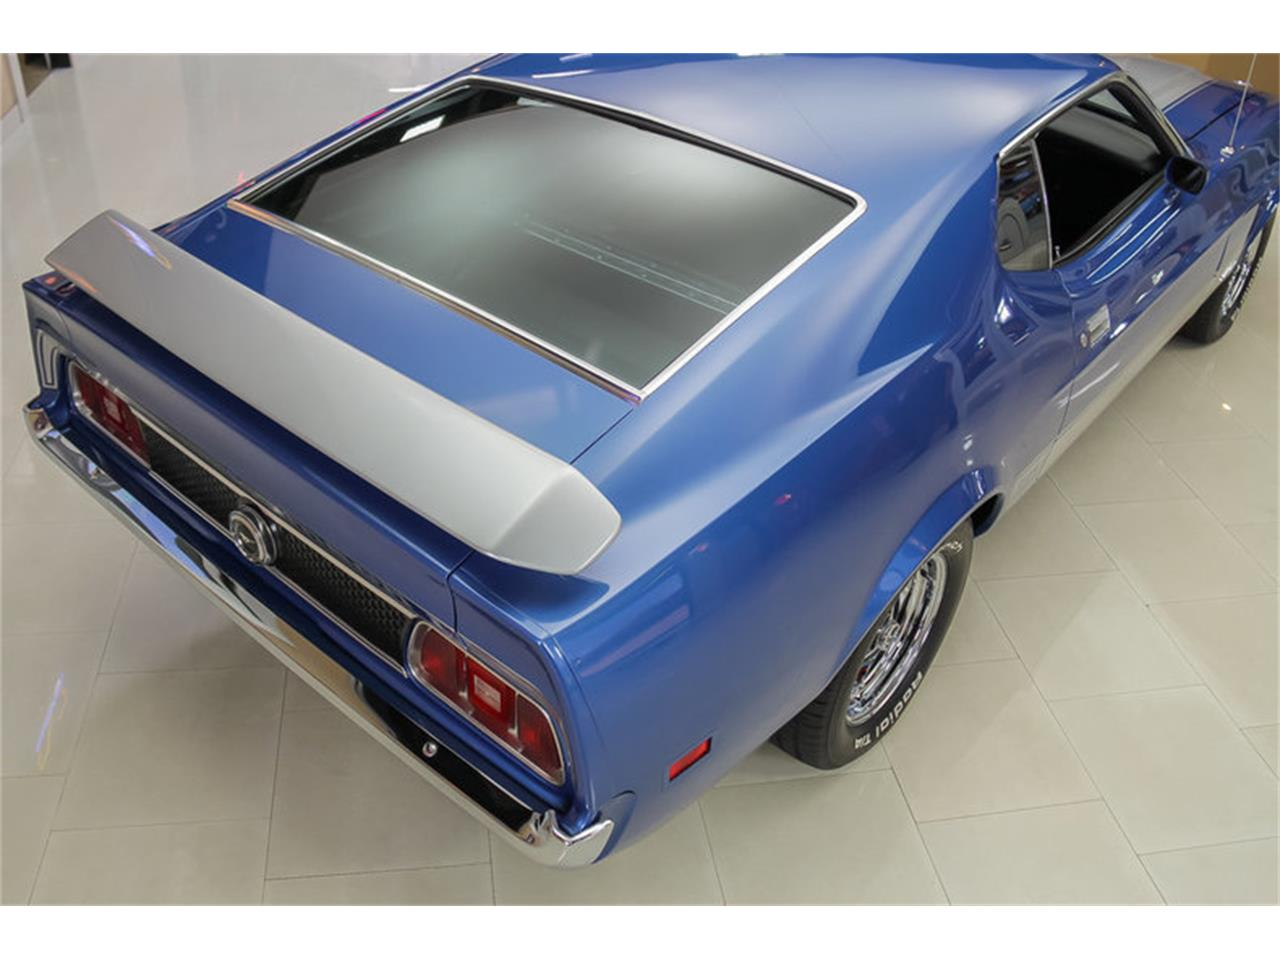 Large Picture of Classic 1973 Mustang Mach 1 Q Code located in Michigan - $34,900.00 - JDX1